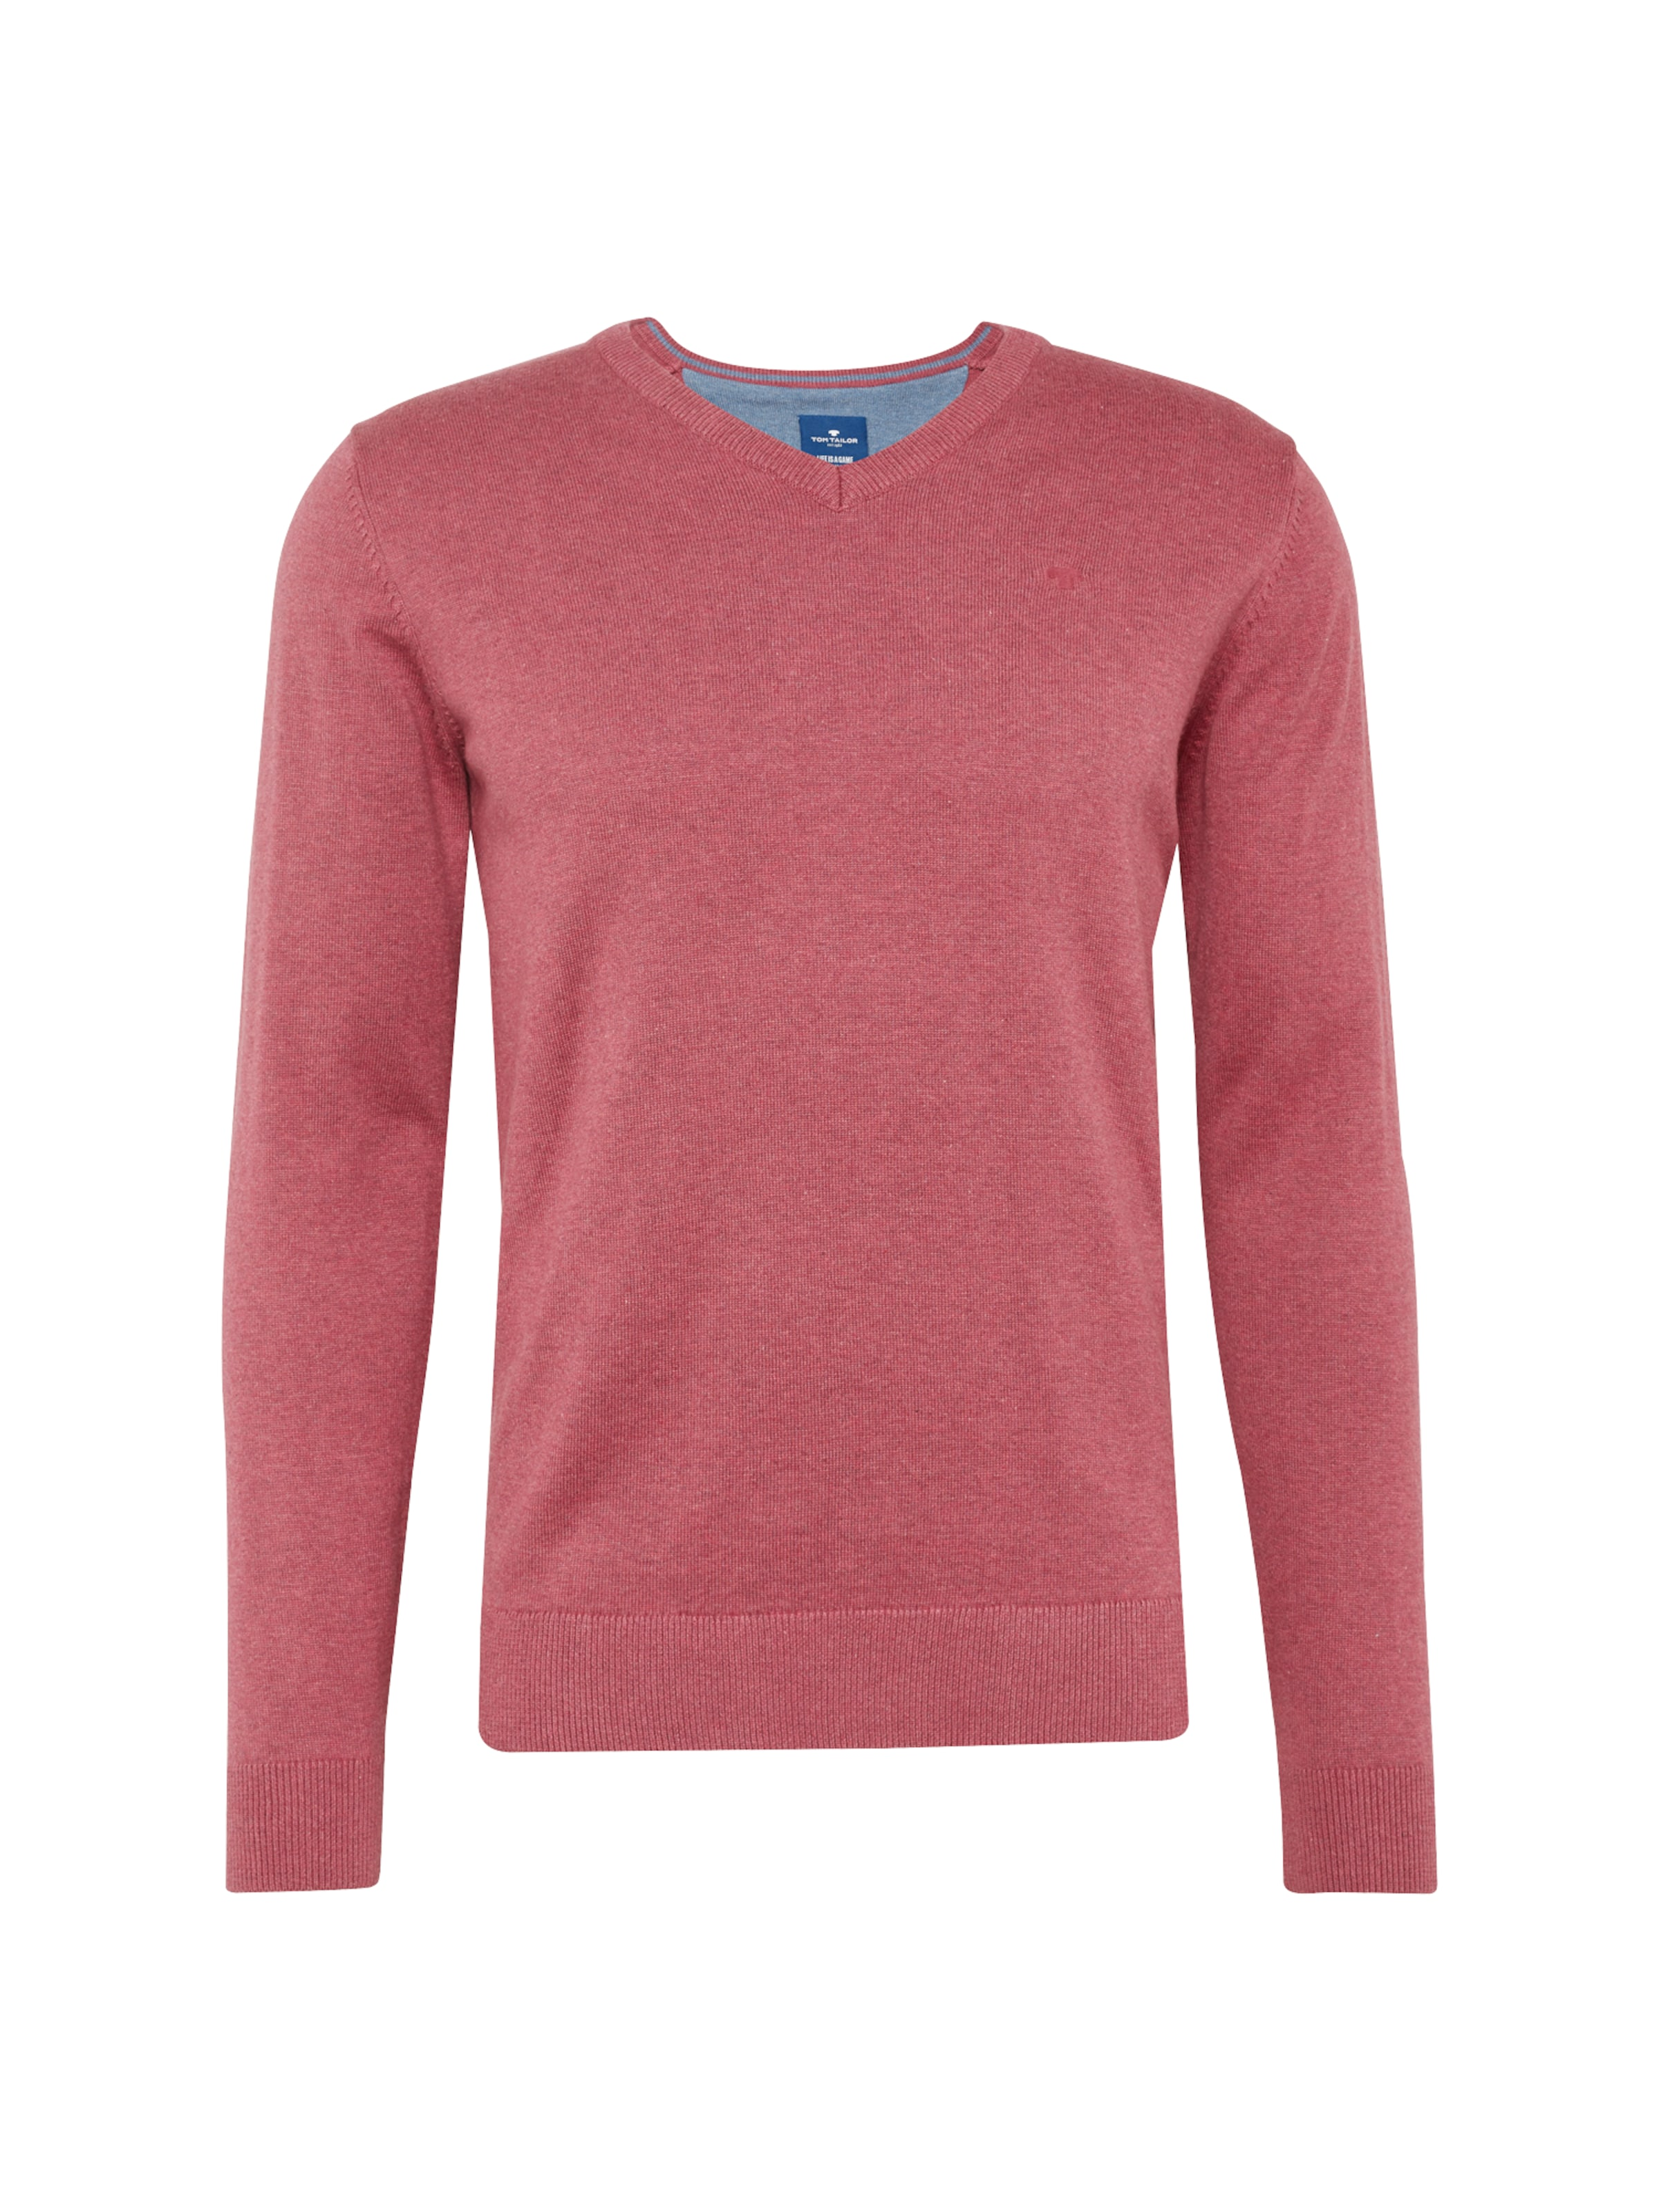 In Tom Tailor Pullover Tom Tailor Pastellrot D2YWH9IE